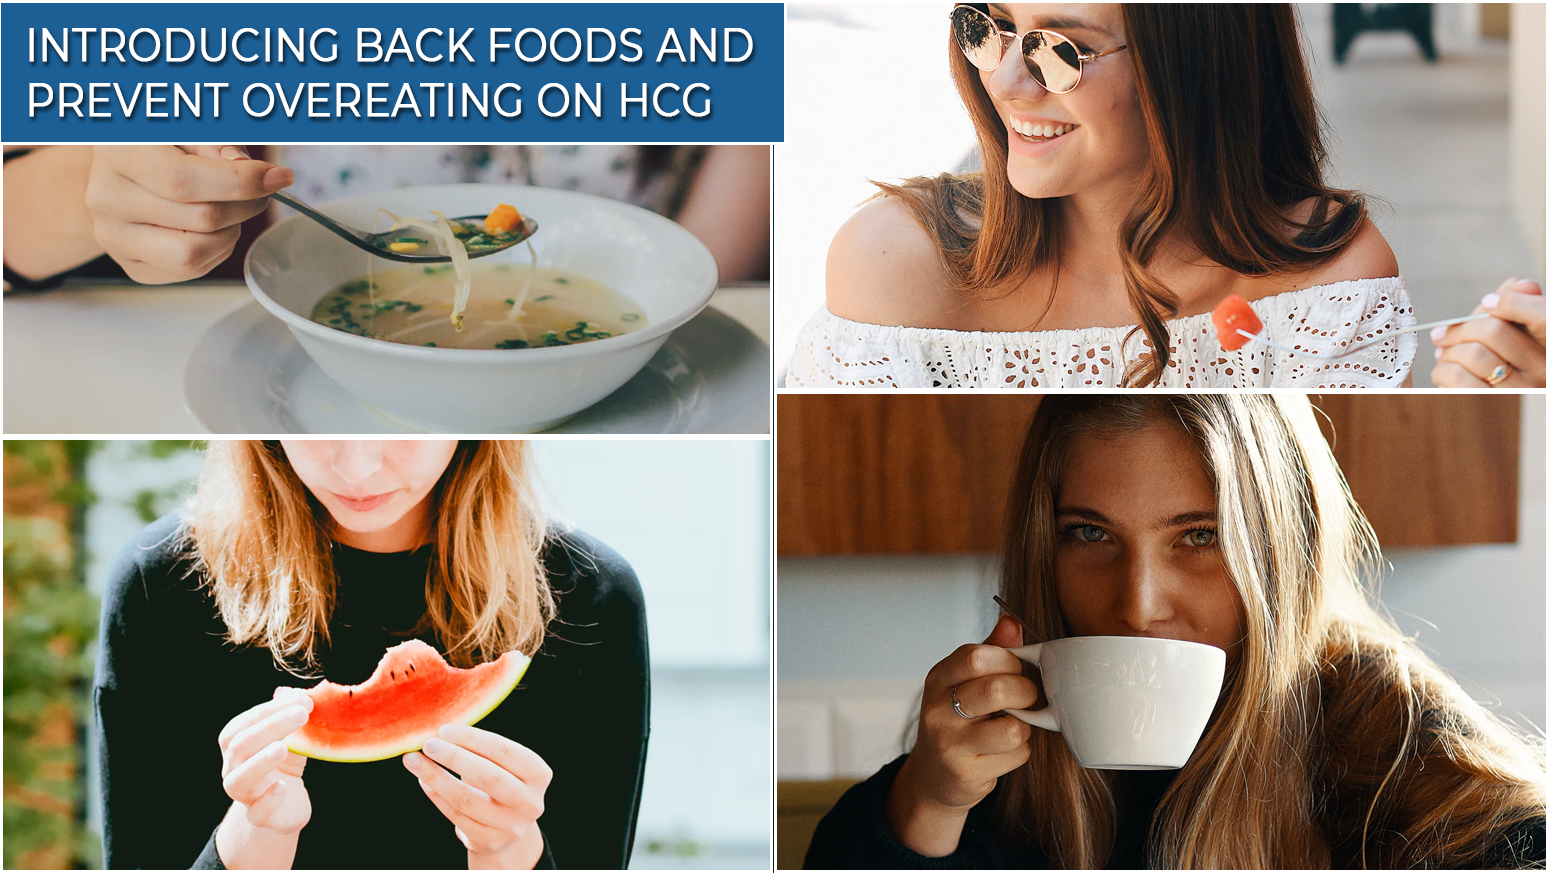 INTRODUCING BACK FOODS AND PREVENT OVEREATING ON HCG